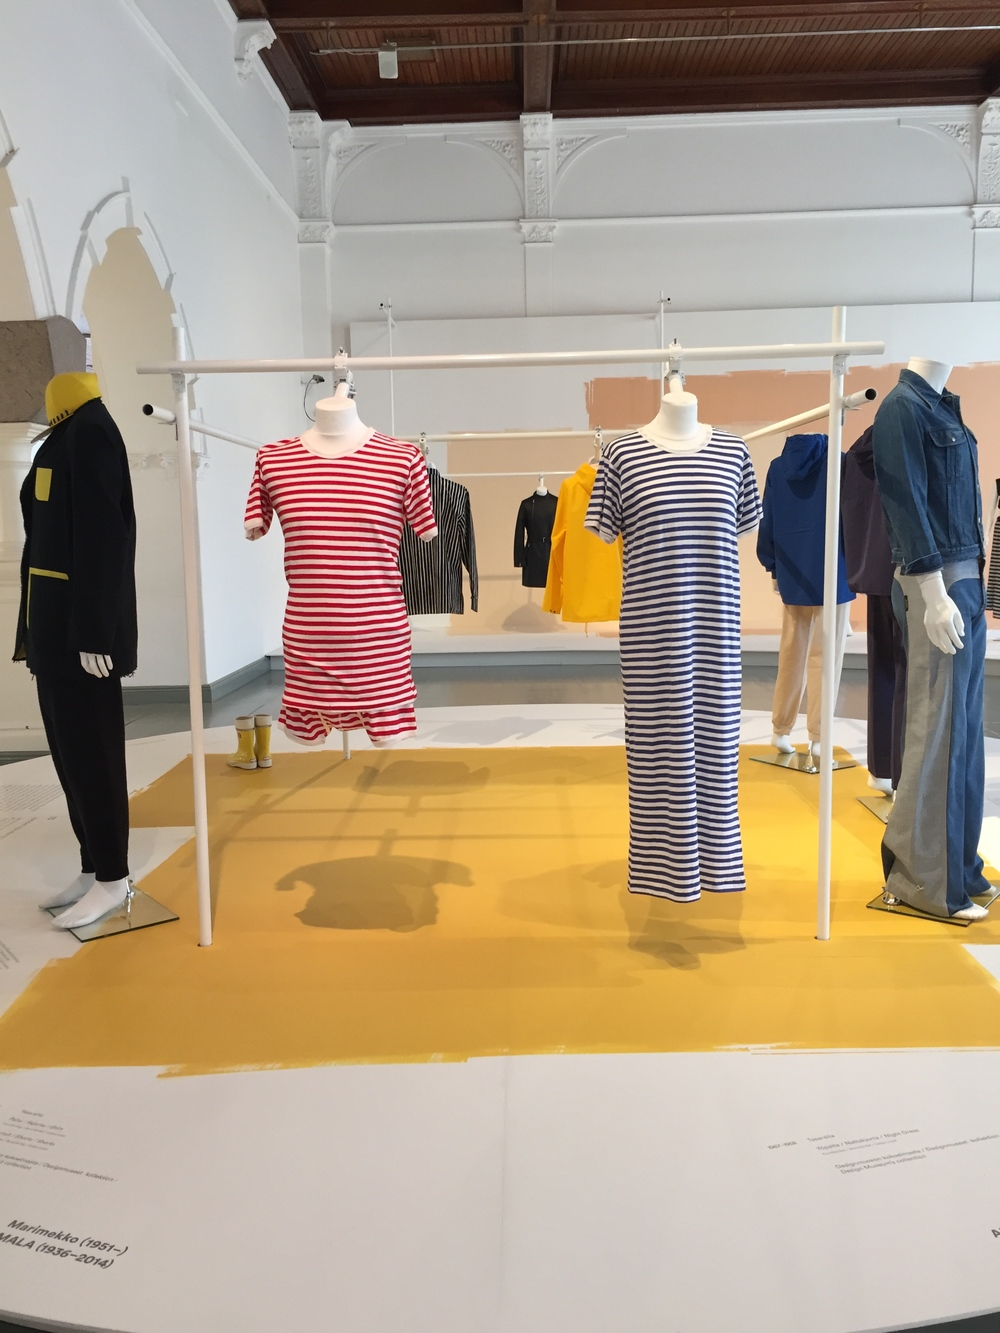 Classic Marimekko stripes on display! @ Design Museo / 10 July 2015